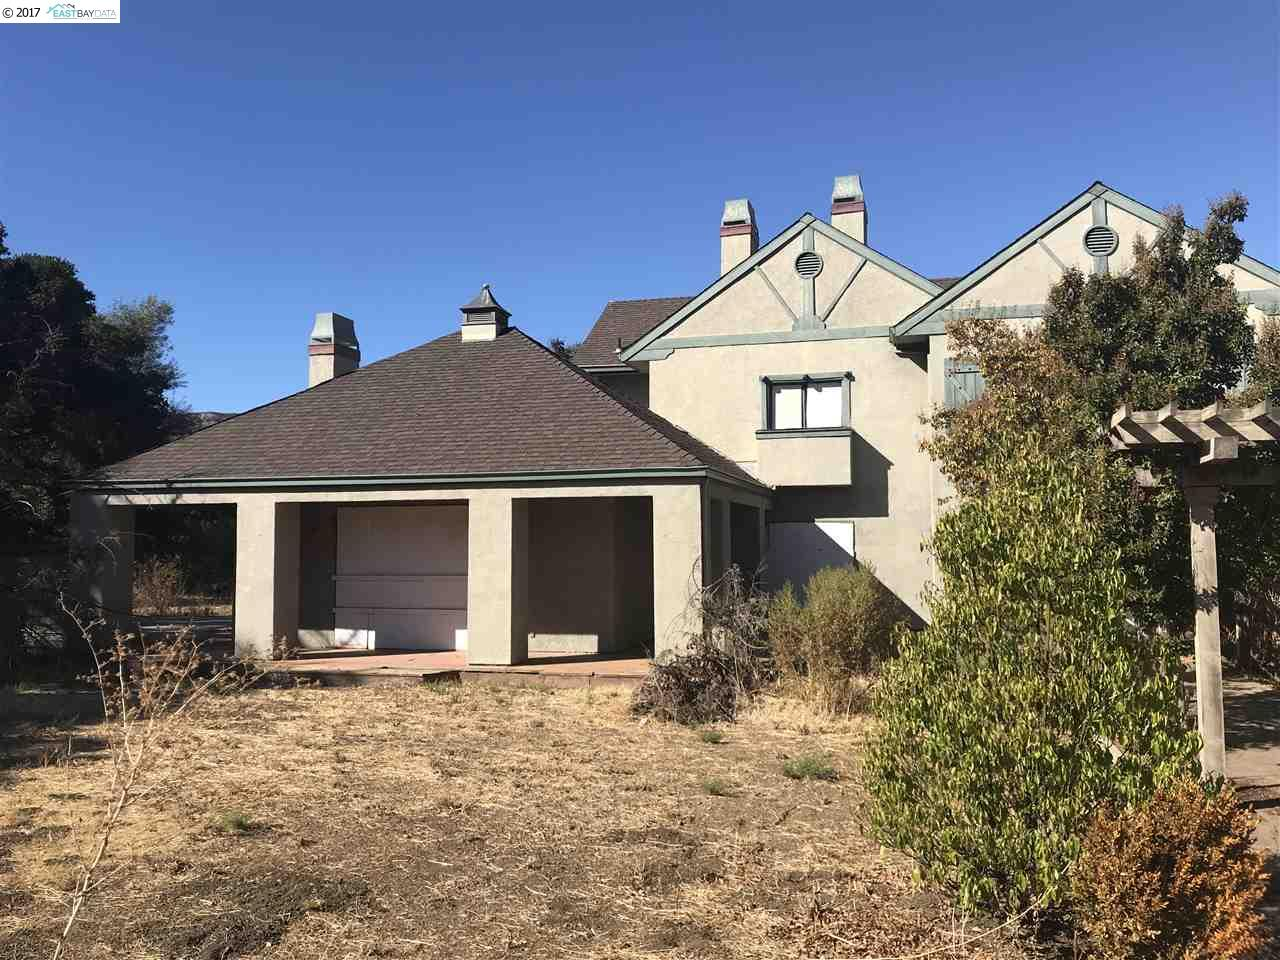 Single Family Home for Sale at 1100 Russelmann Park Road 1100 Russelmann Park Road Clayton, California 94517 United States